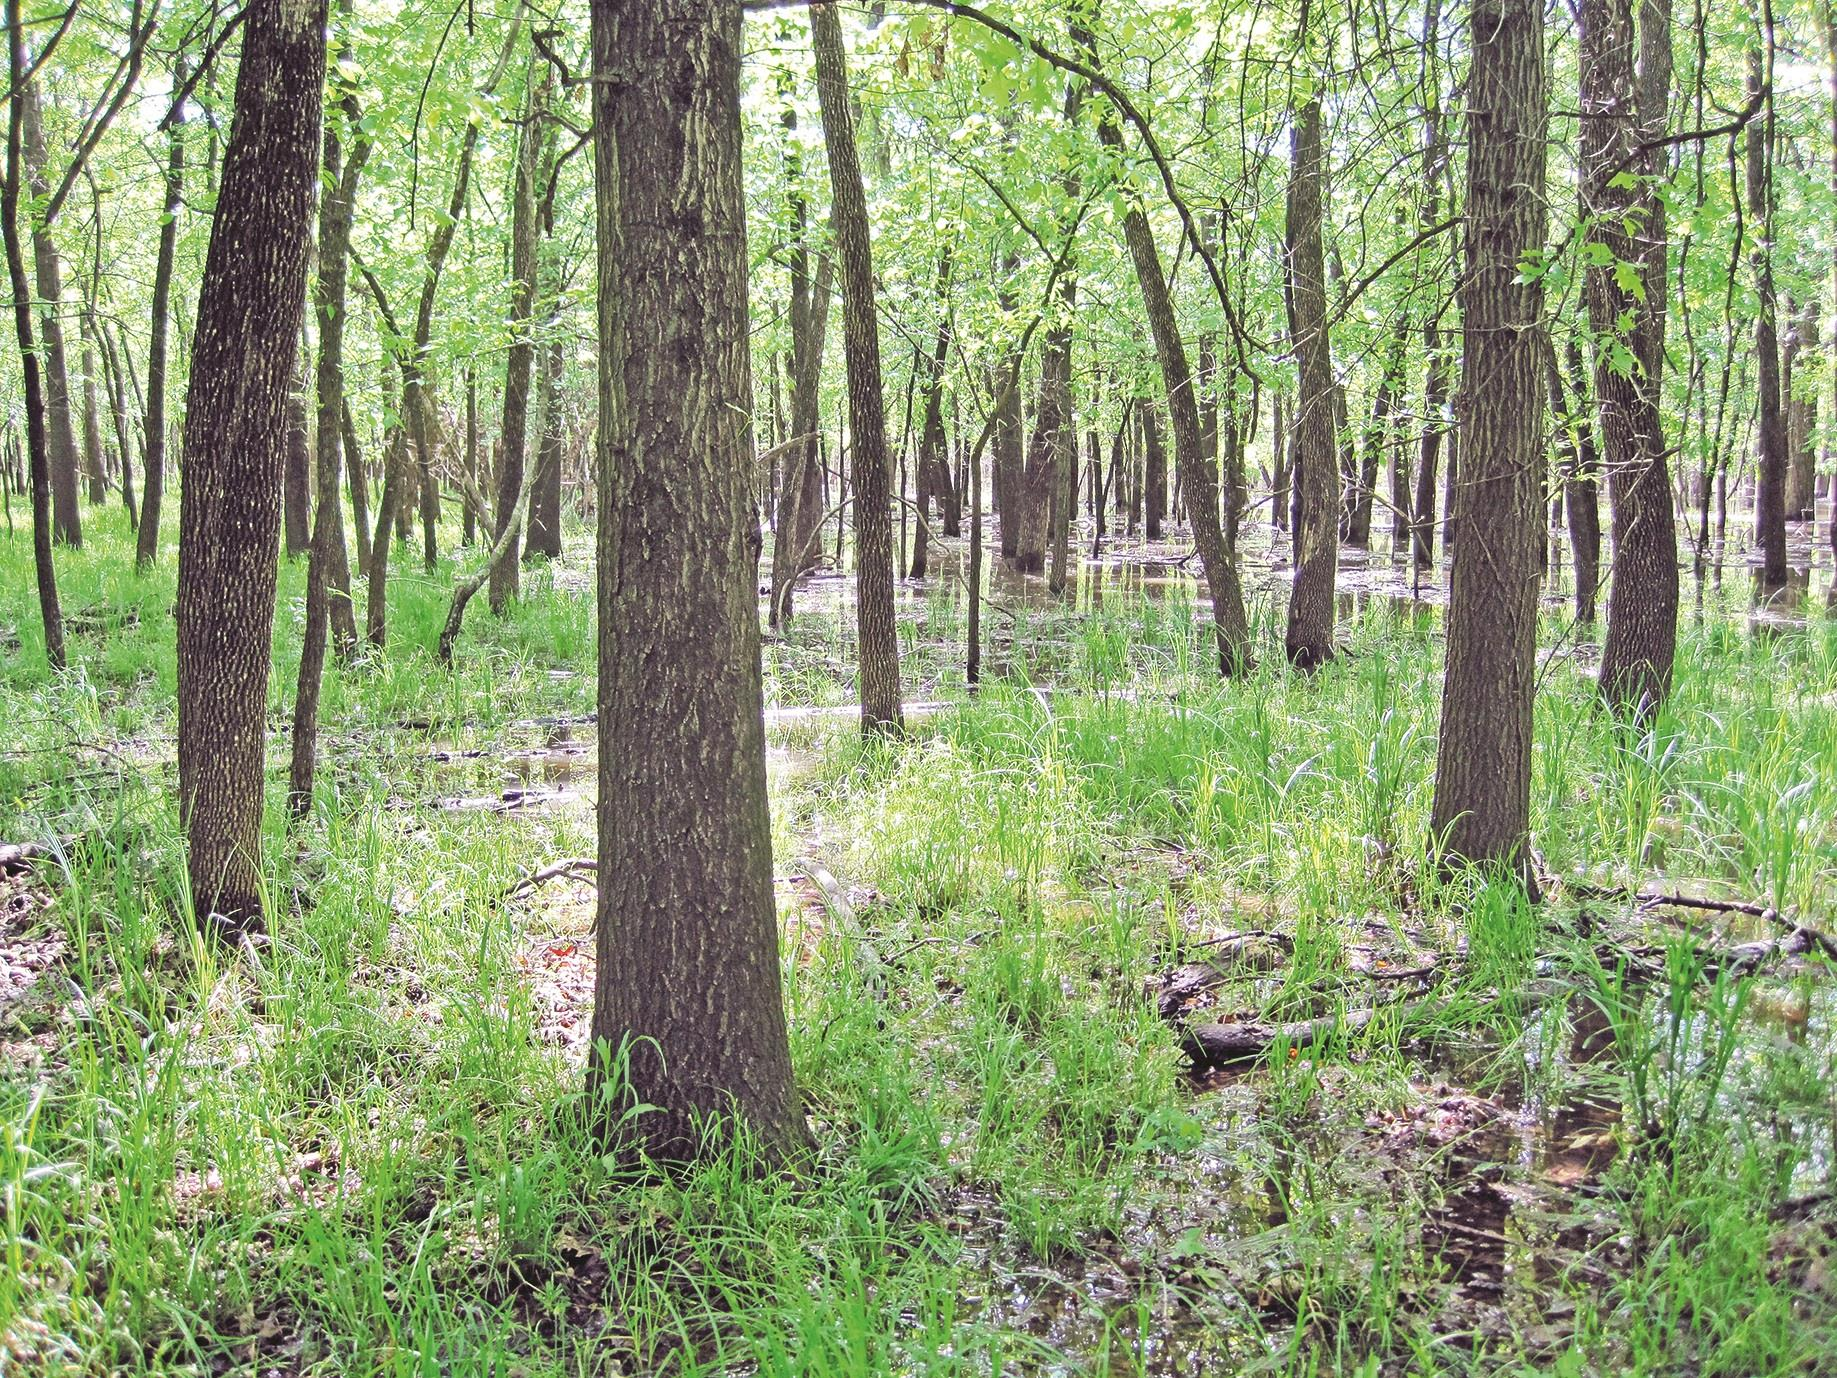 Note: Many bottomland hardwoods in southeast may be jurisdictional Waters of the US.